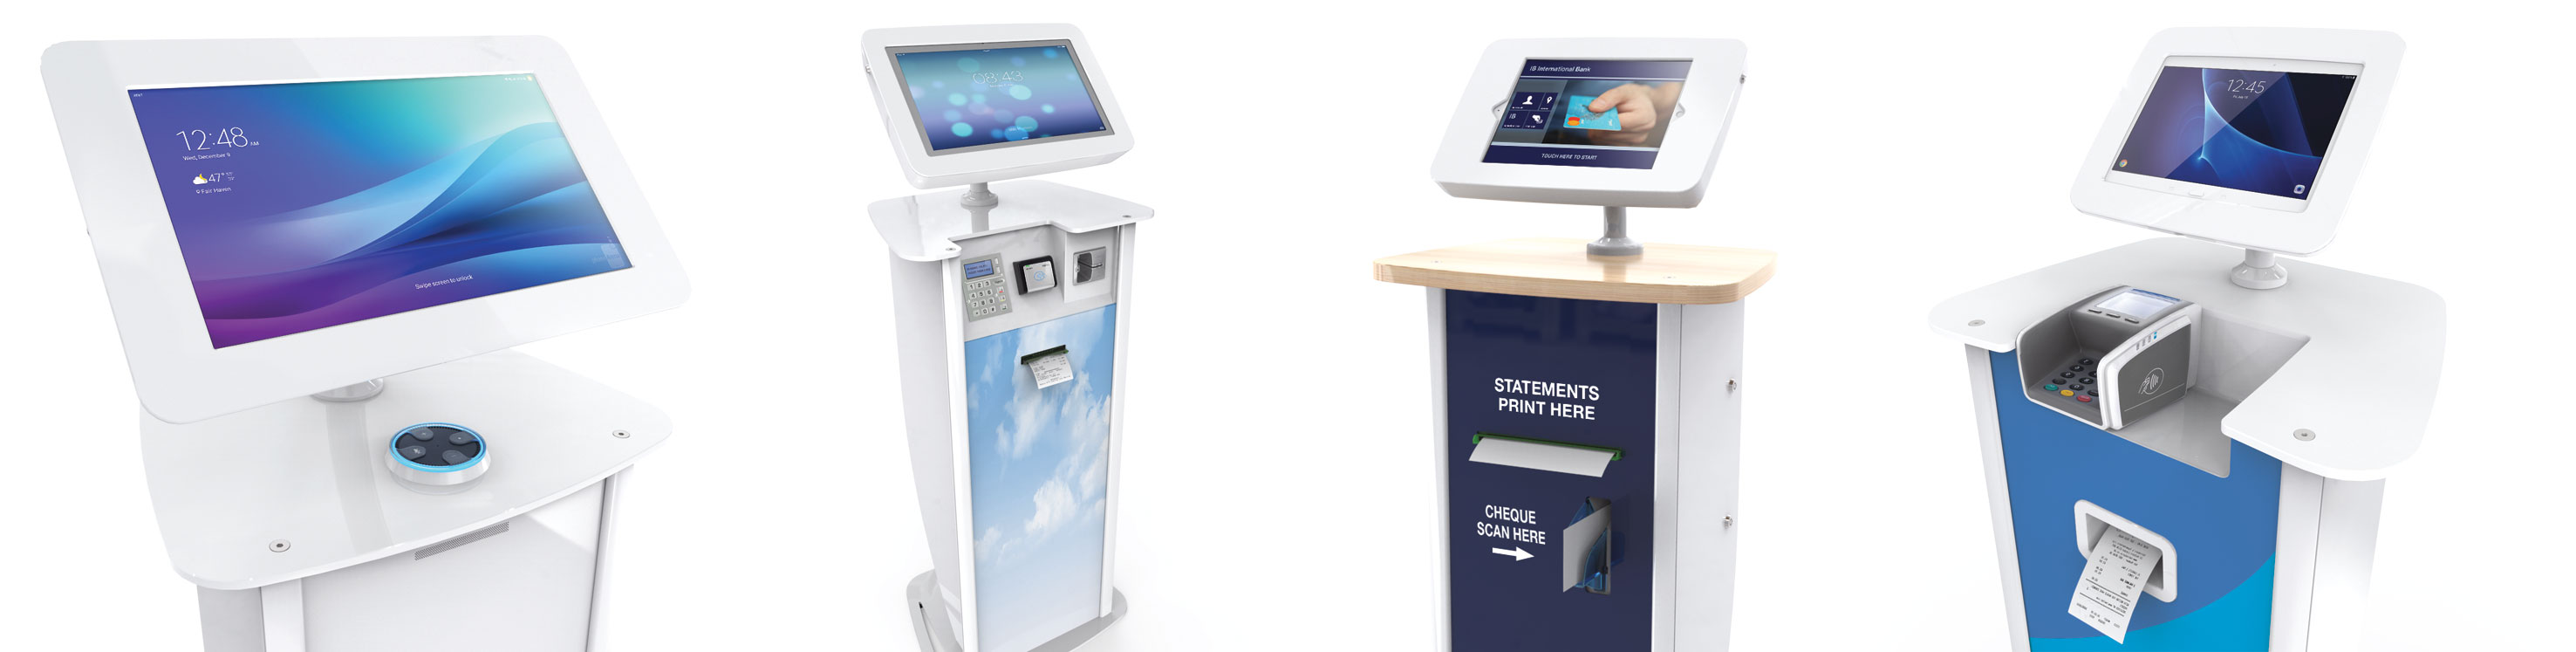 The Important Features for Every Kiosk System